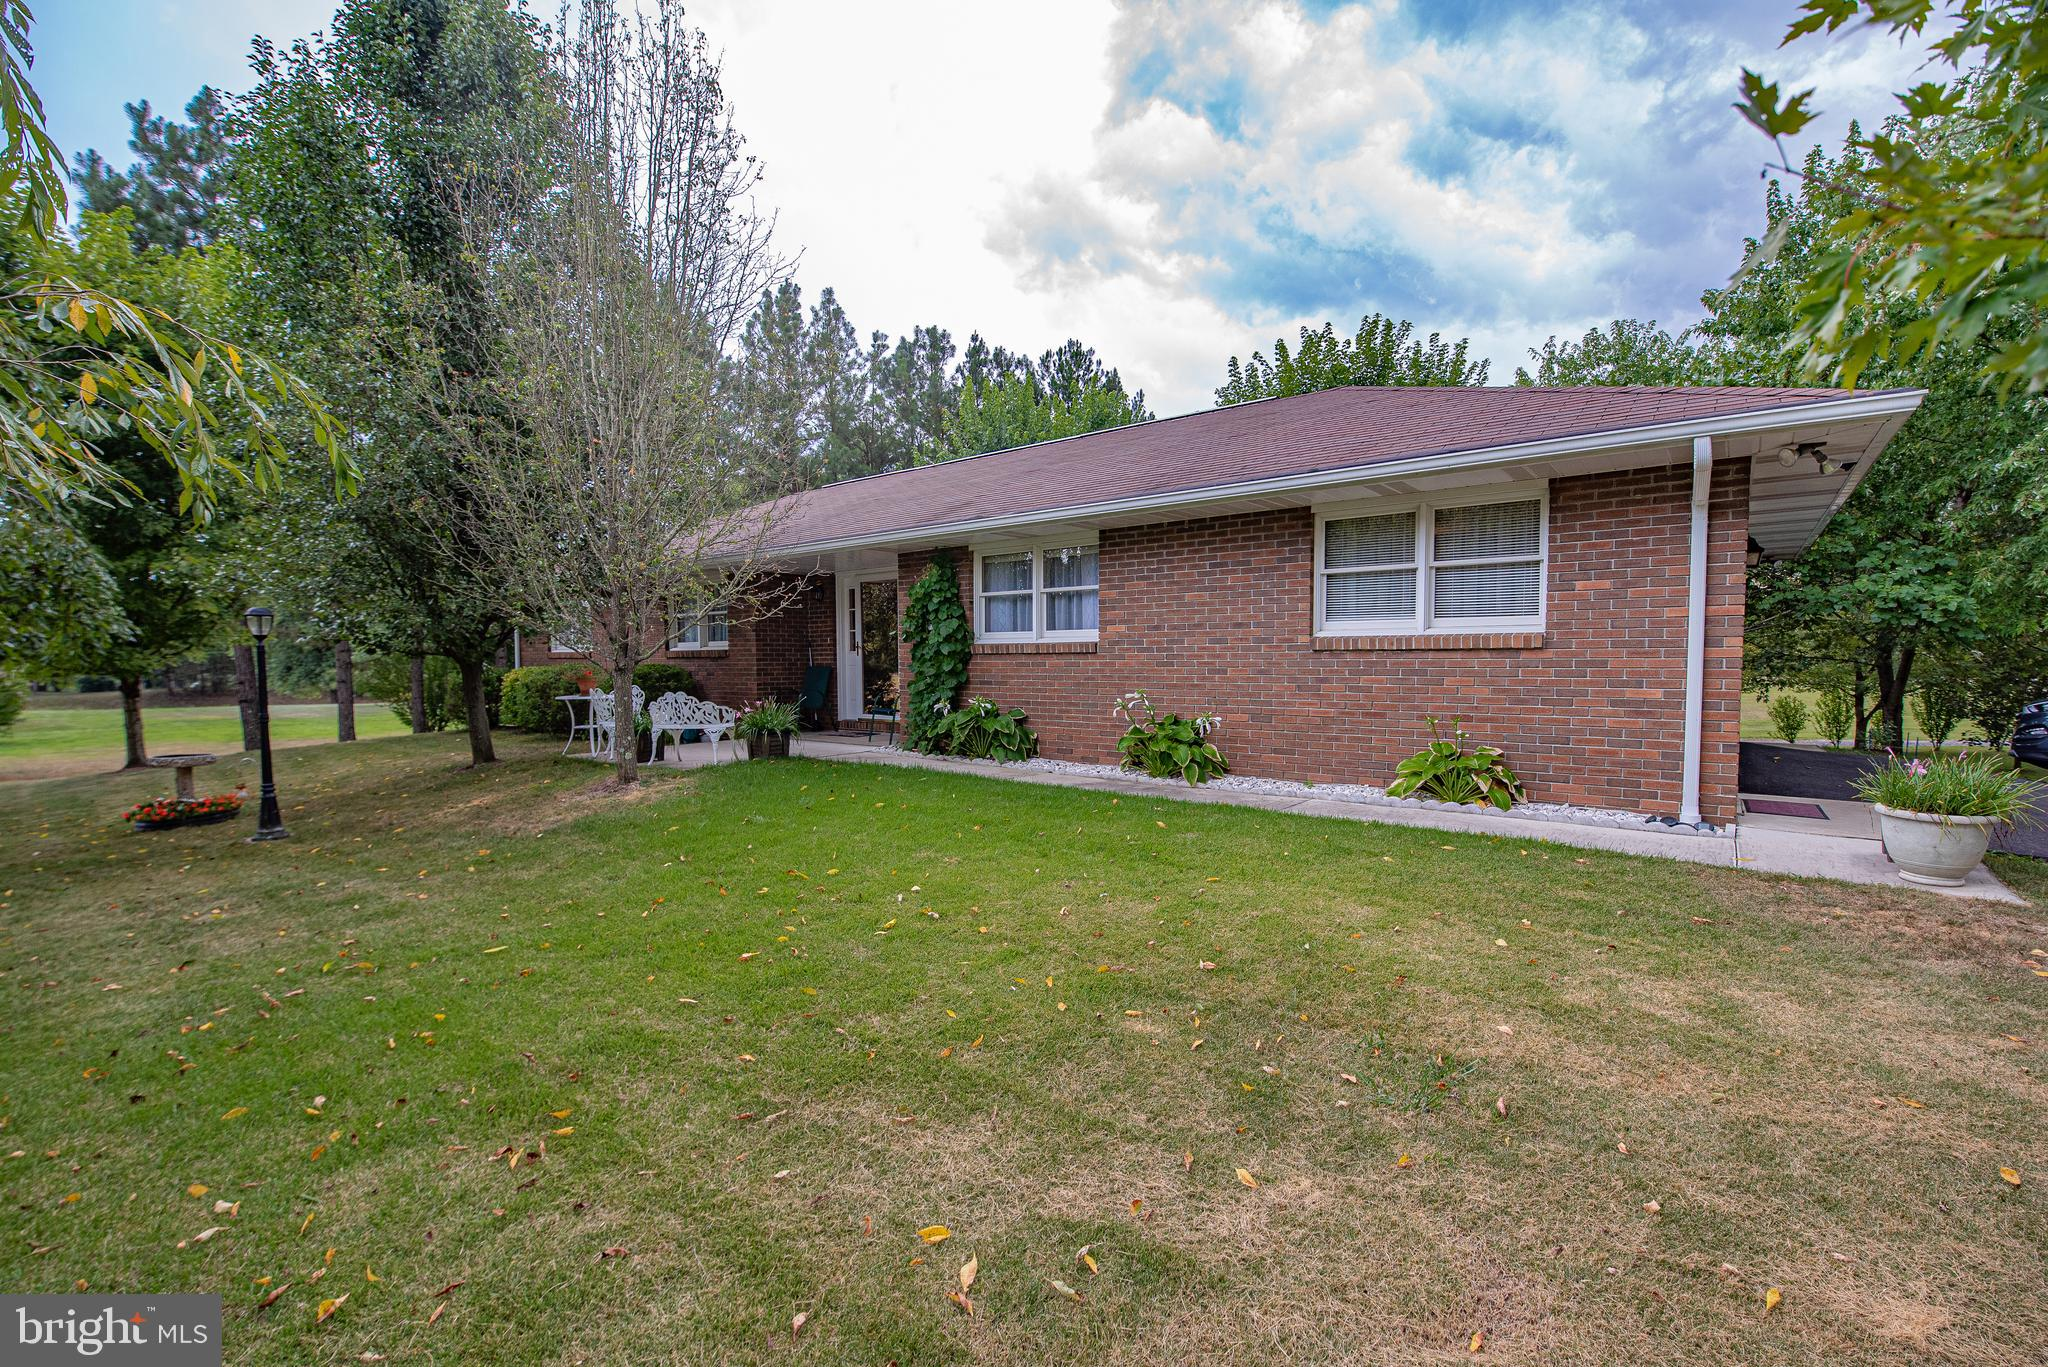 13 S PETRY, FORT ASHBY, WV 26719